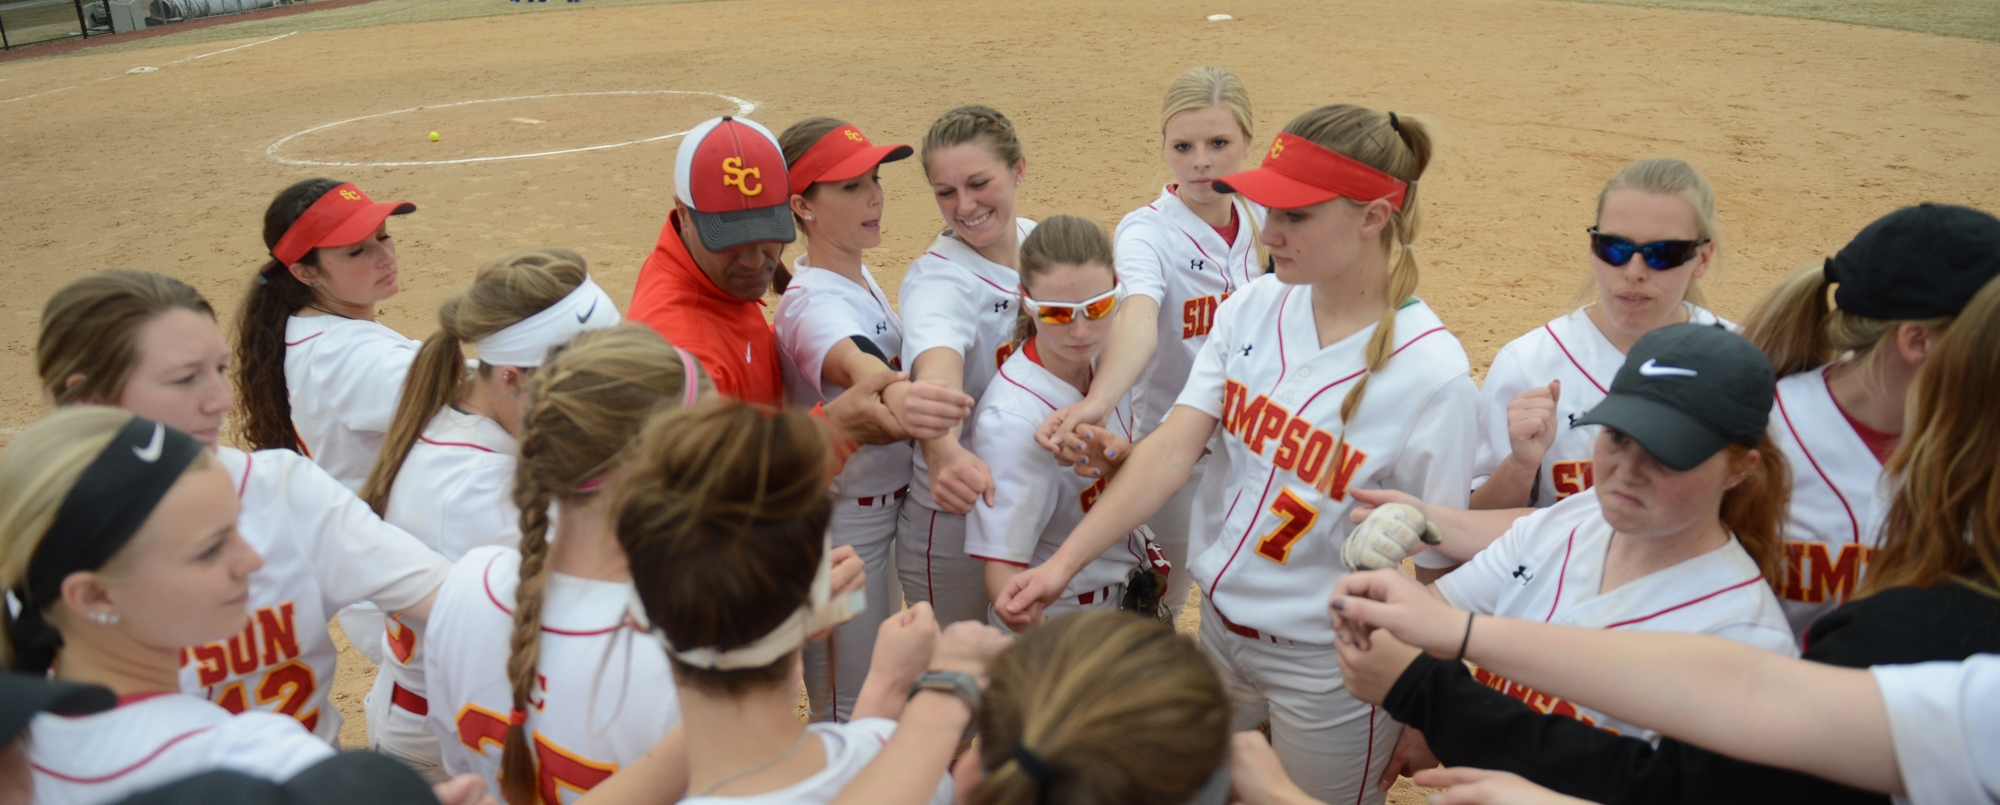 Storm softball opens up season in Florida